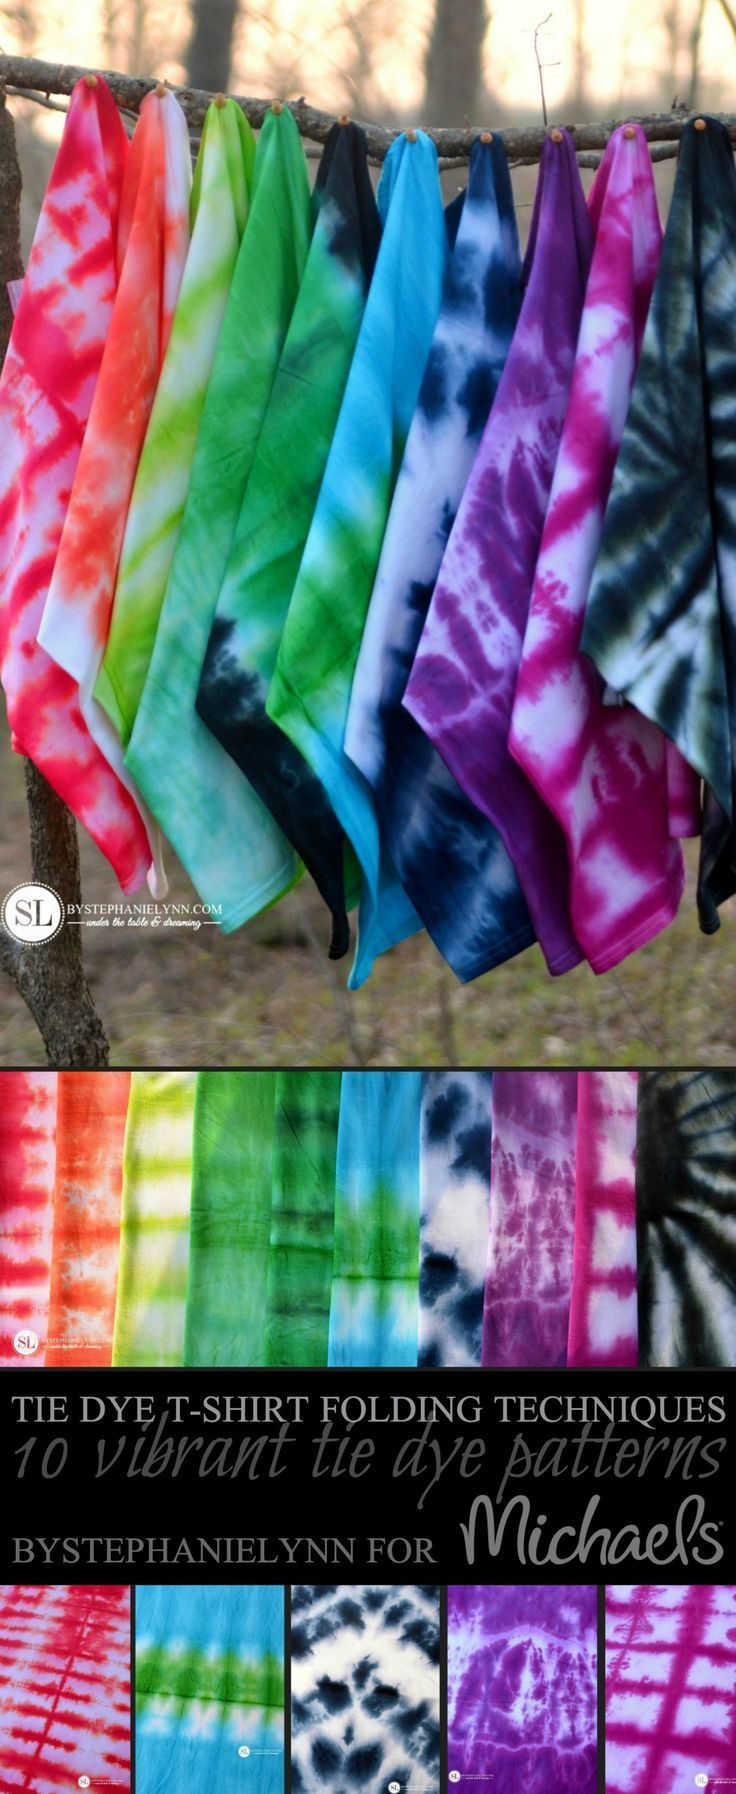 25 best ideas about tie dye on pinterest tie dye shirts. Black Bedroom Furniture Sets. Home Design Ideas